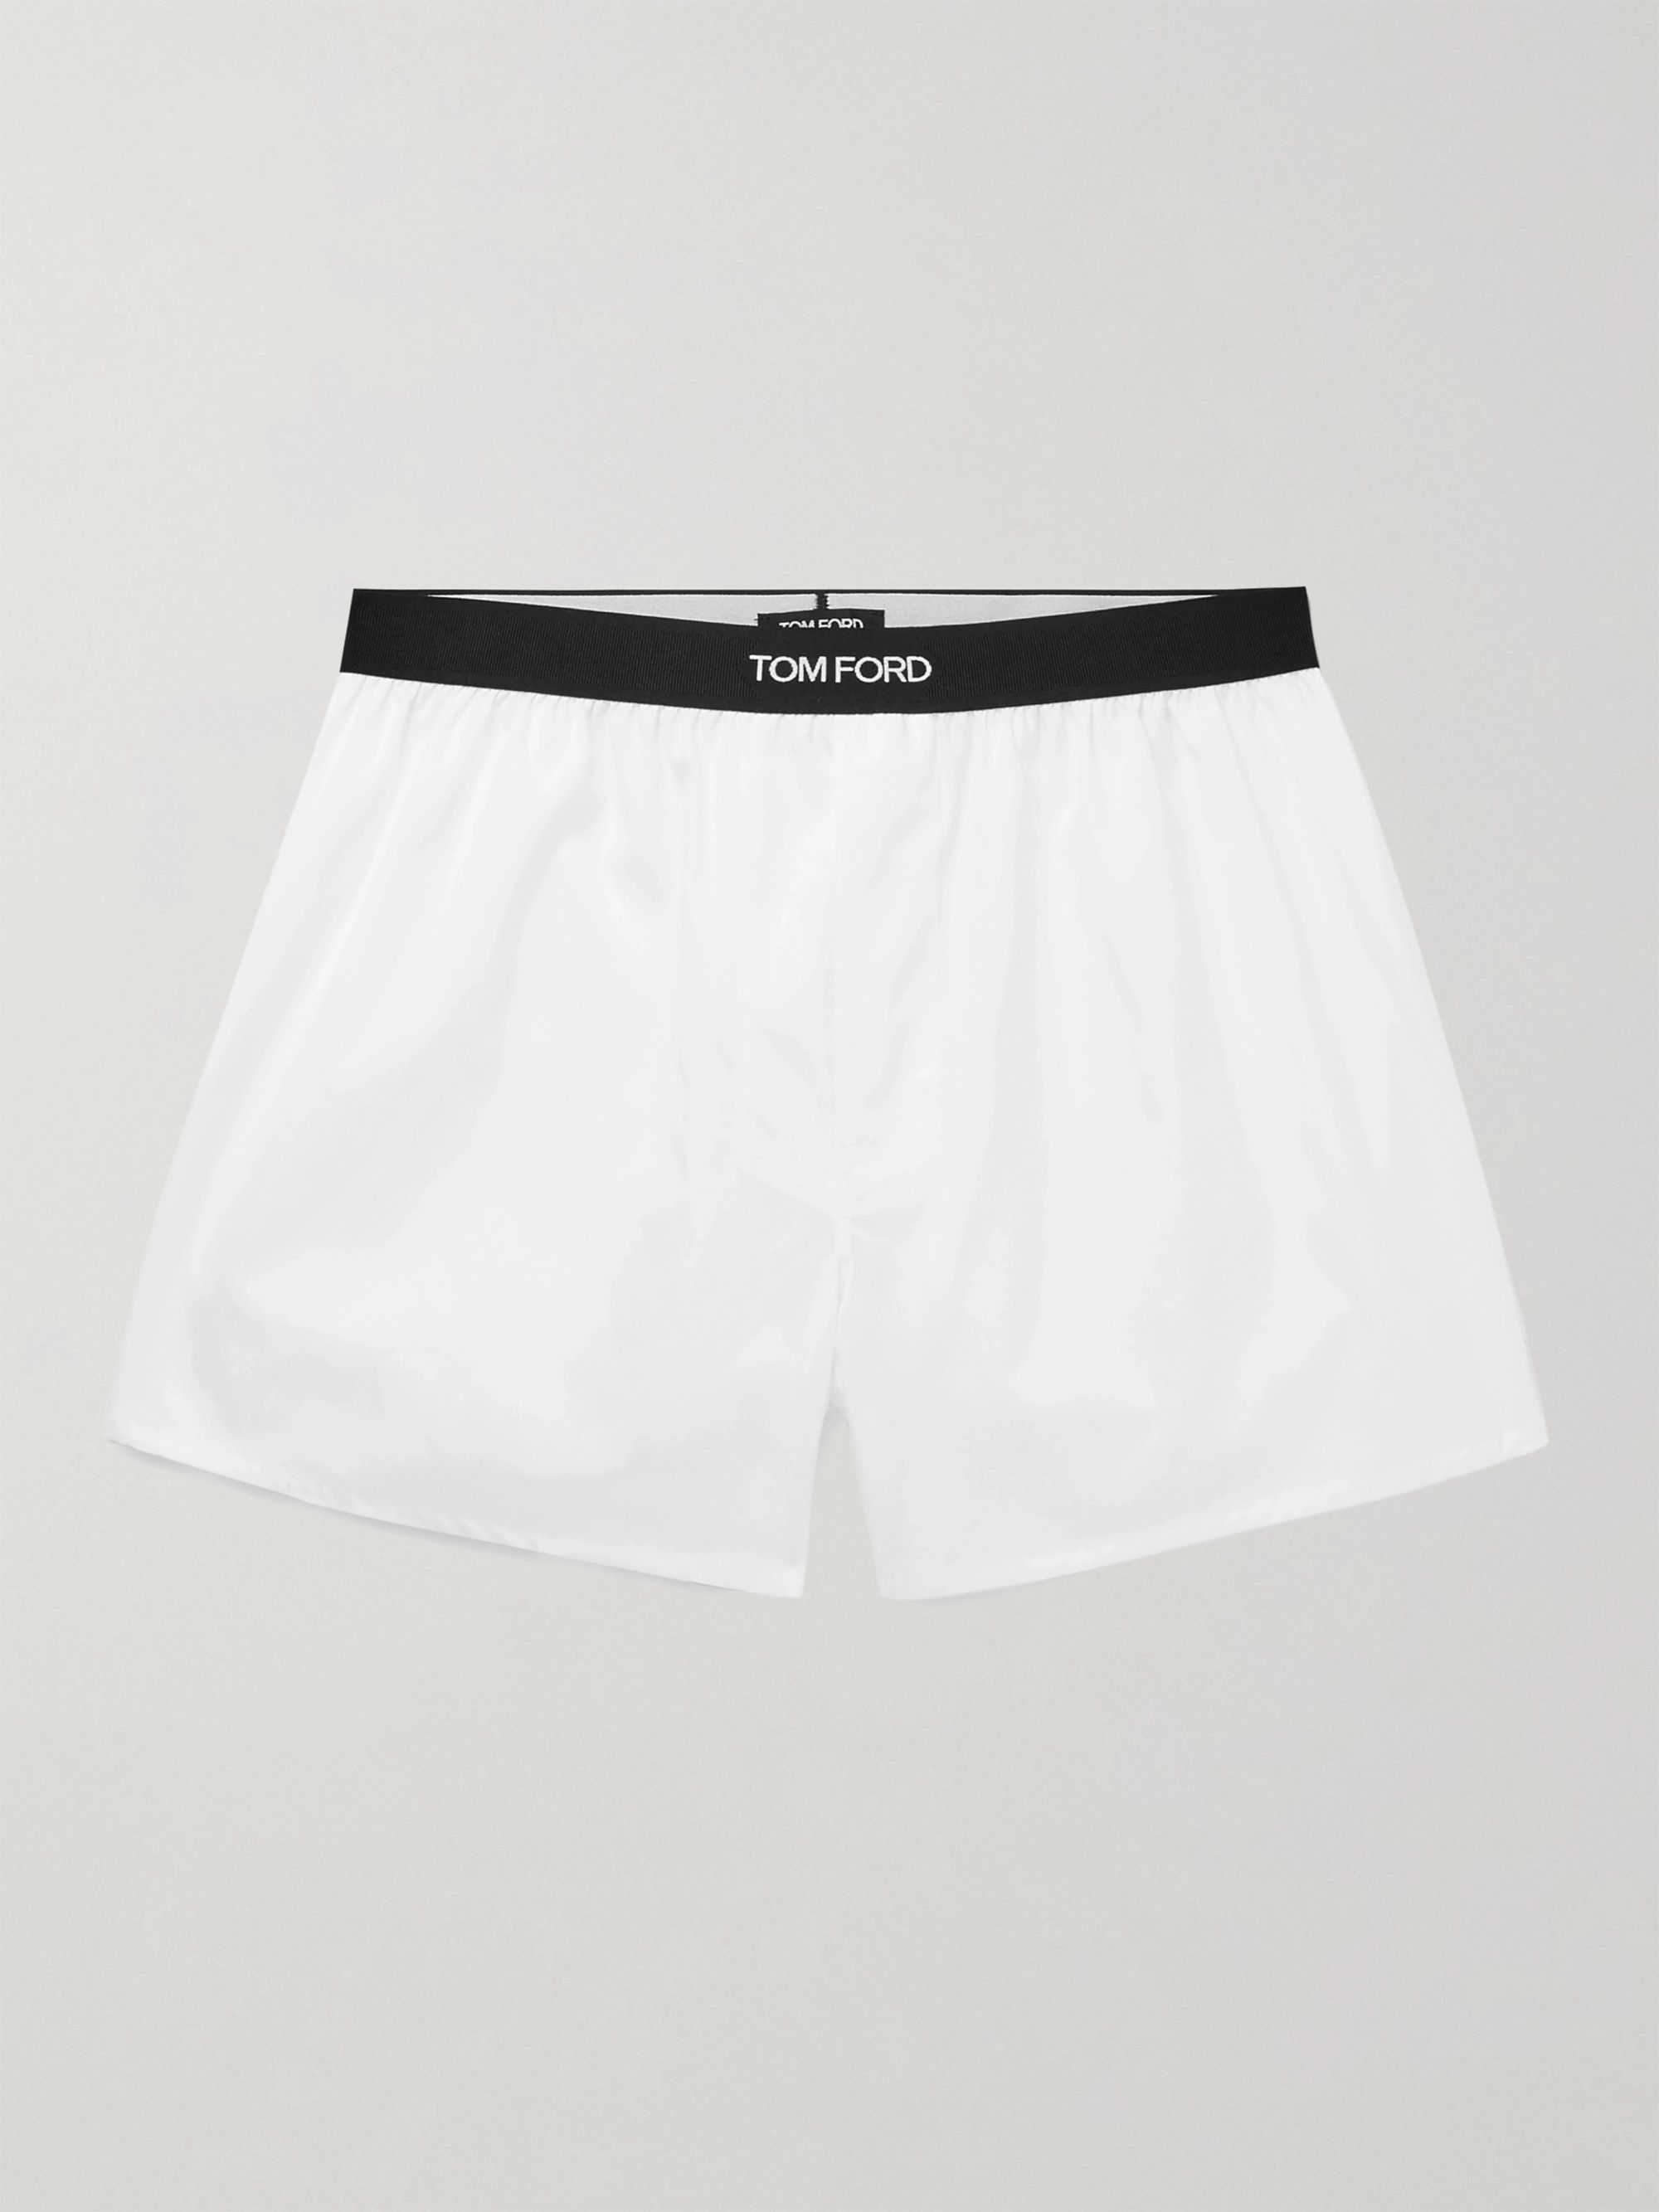 TOM FORD Grosgrain-Trimmed Cotton Boxer Shorts